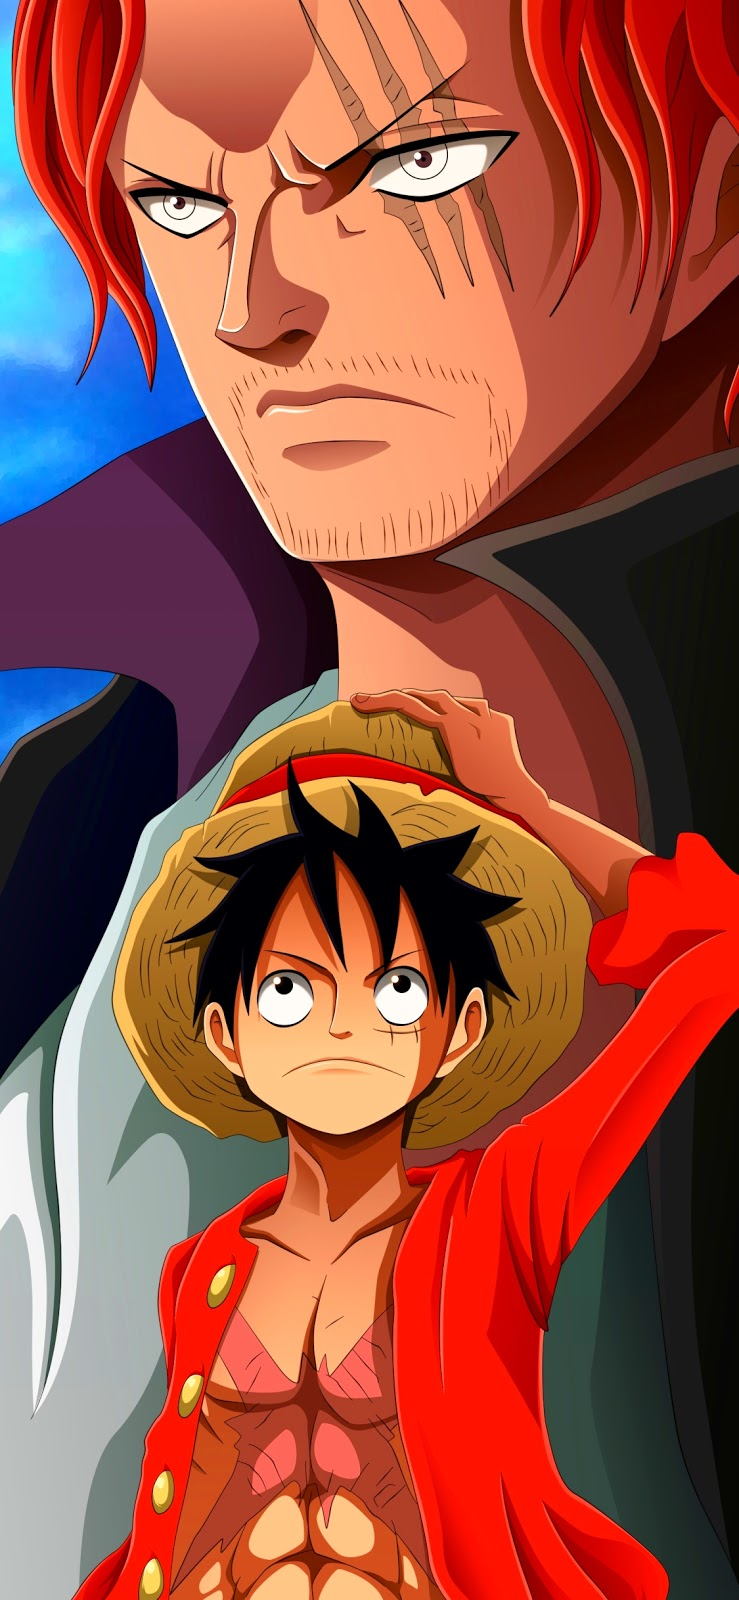 One Piece Monkey D One Piece Anime Brothers 3049934 Hd Wallpaper Backgrounds Download